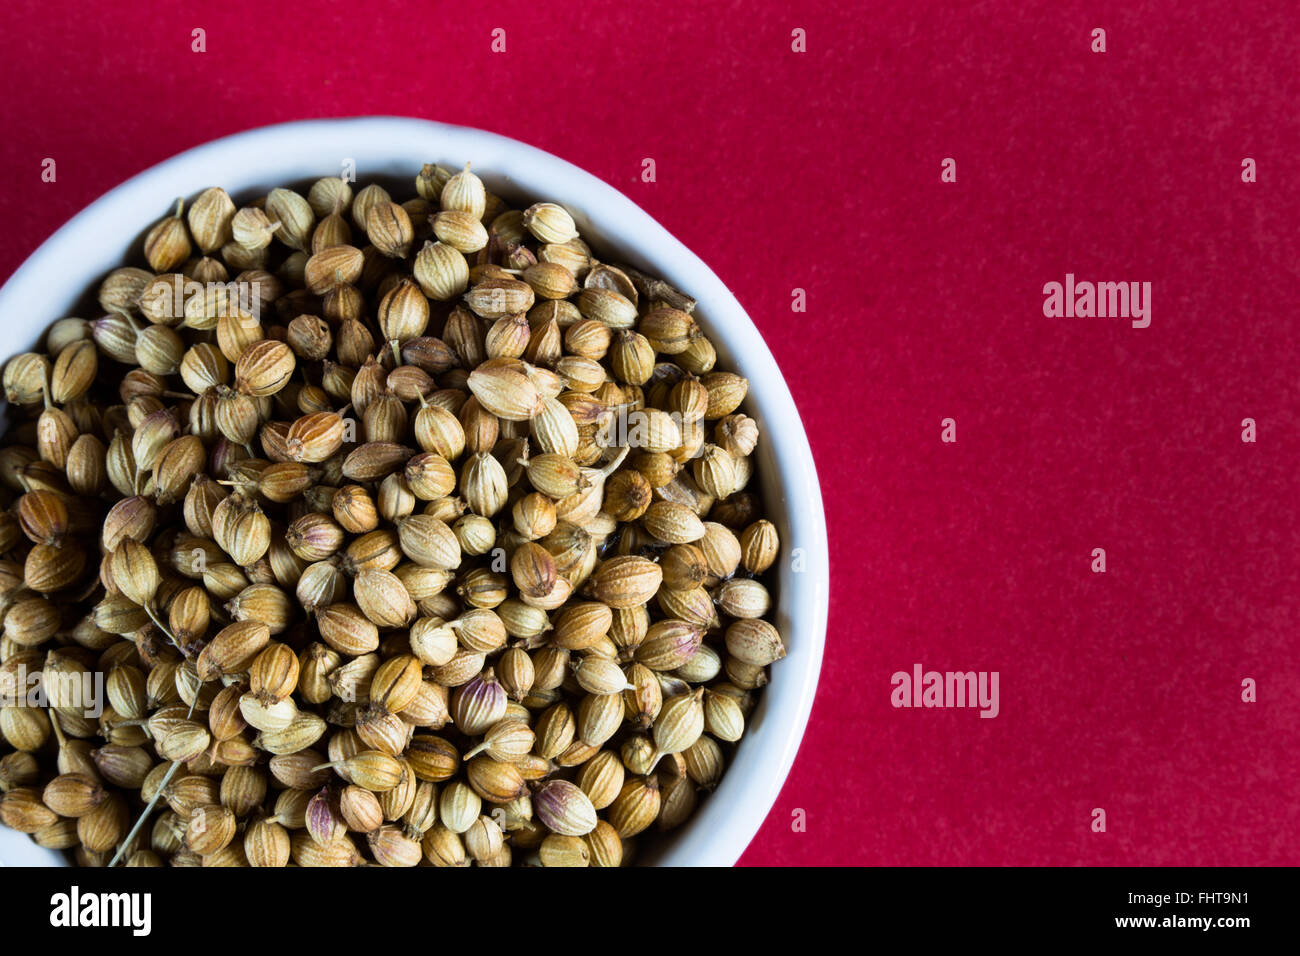 A macro image of Mediterranean culinary/herbal whole spices. Specifically Whole Coriander Seeds. - Stock Image